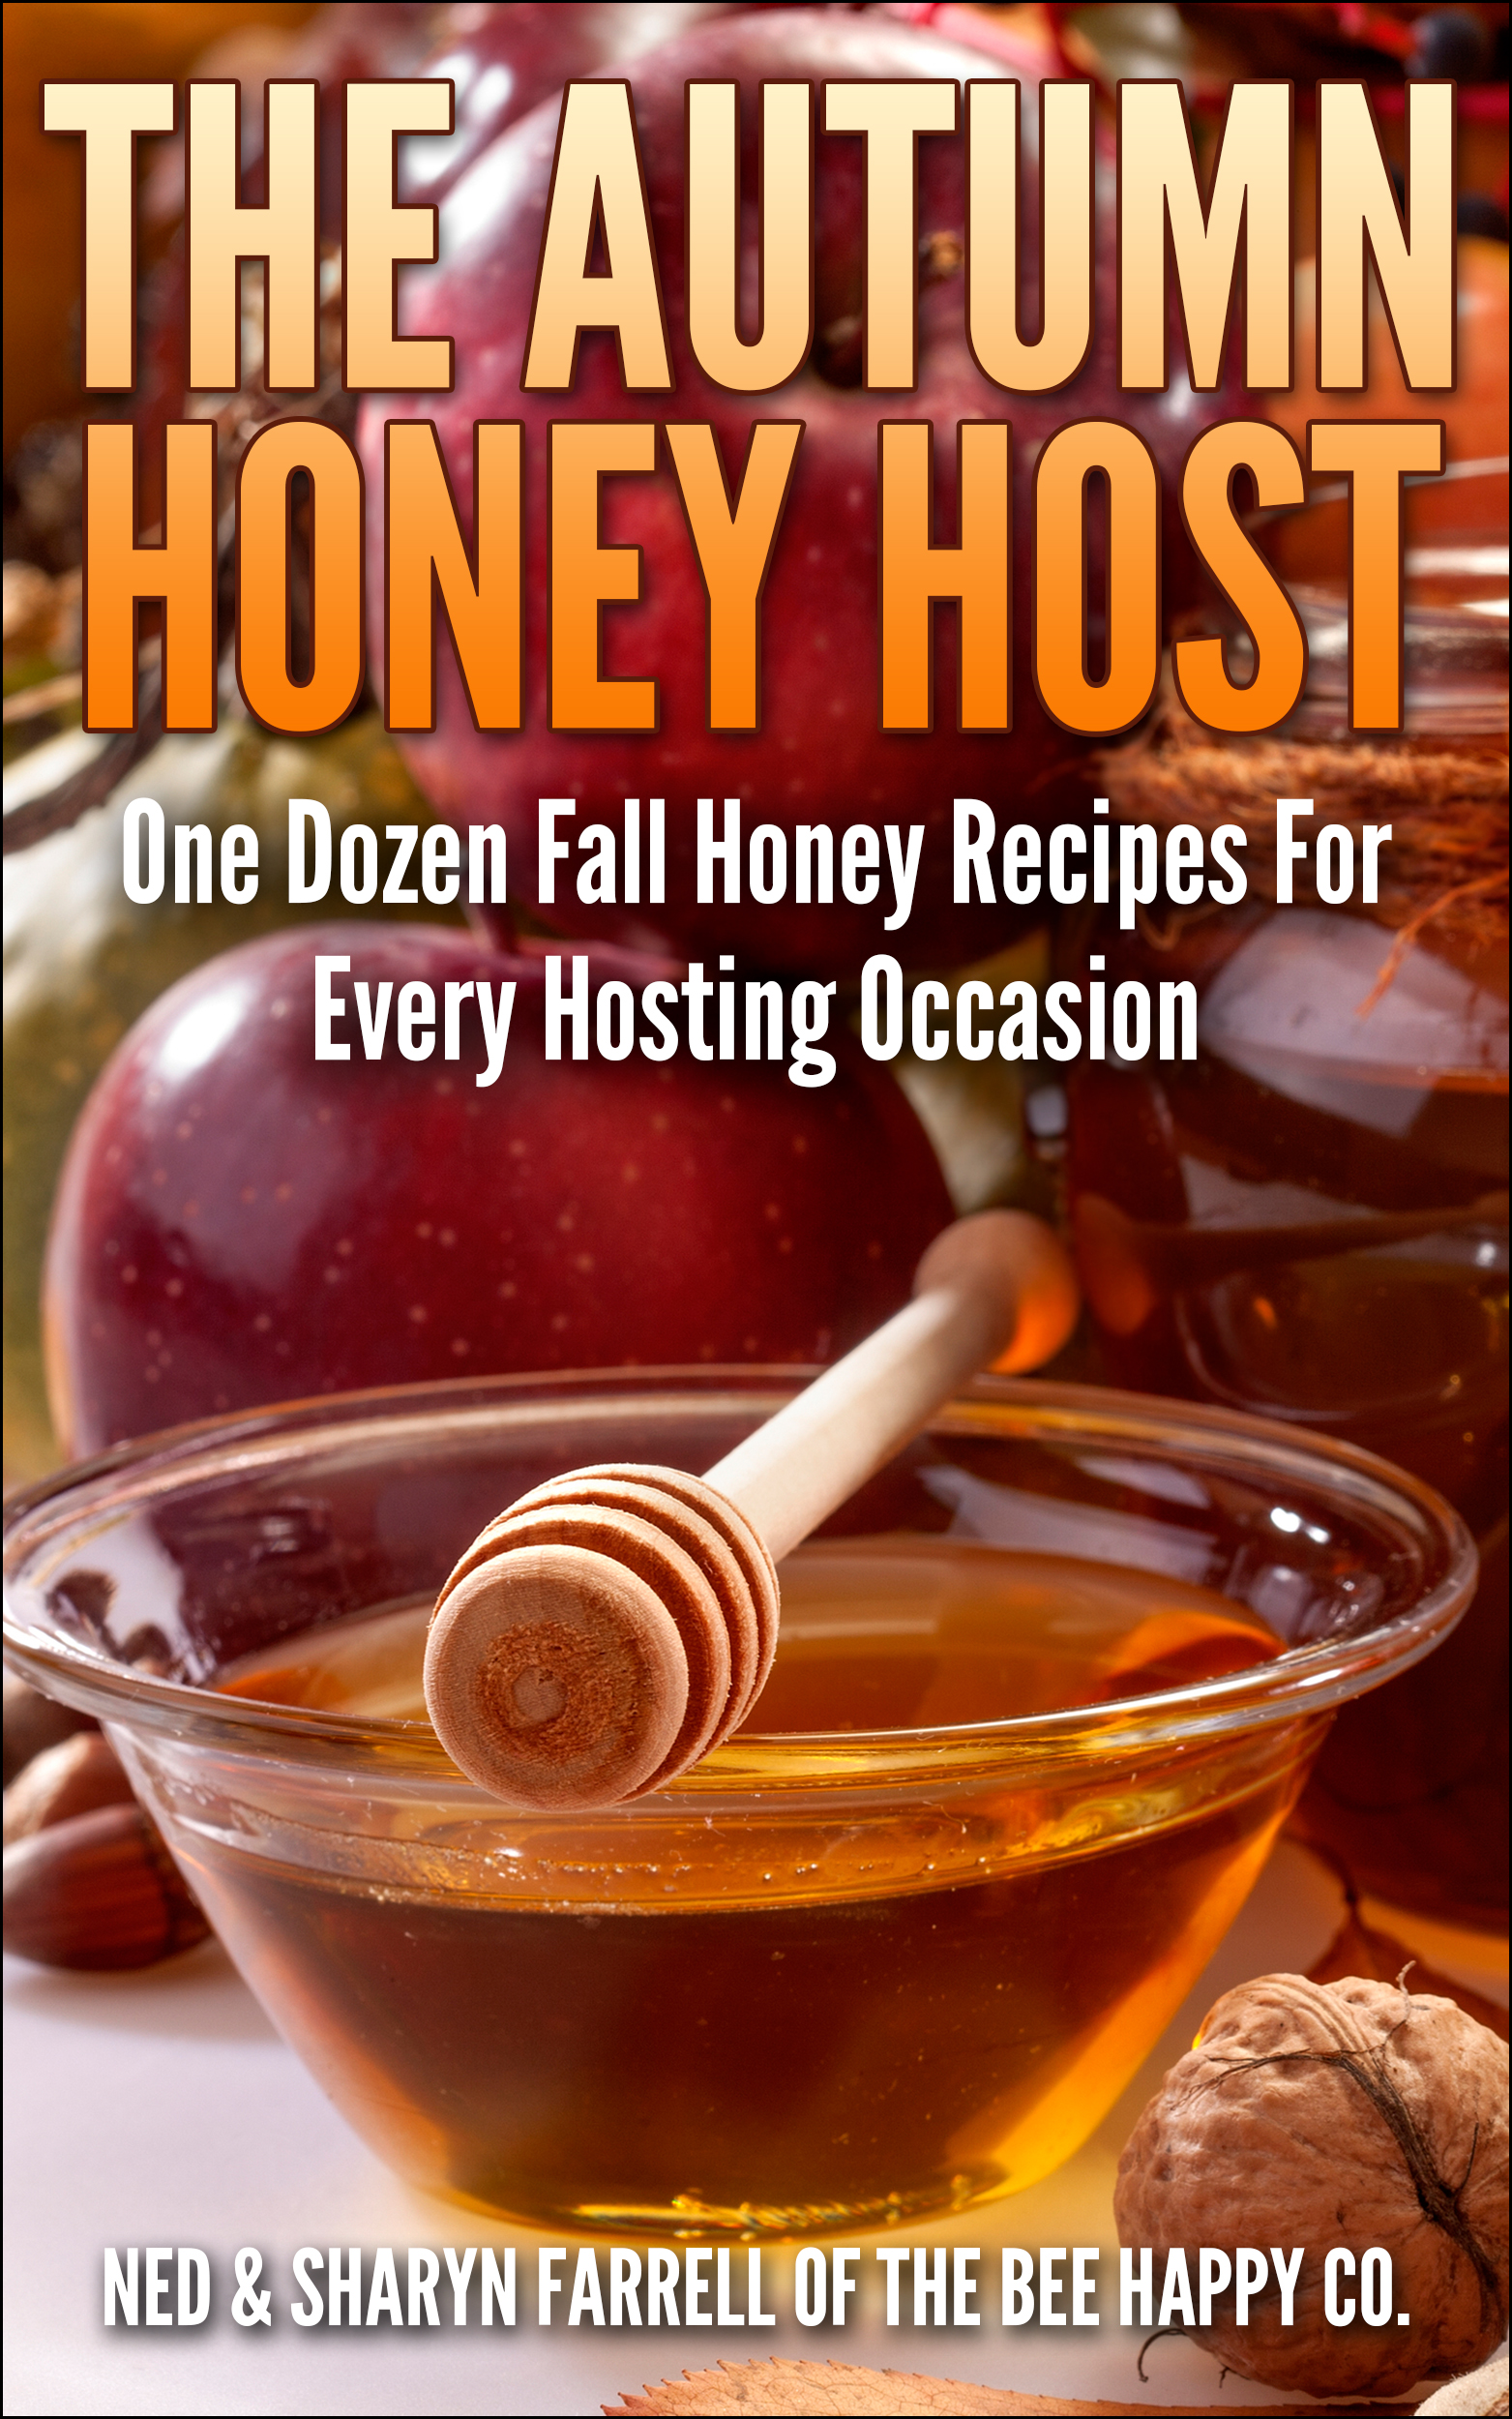 The Autumn Honey Host Cookbook is Here!